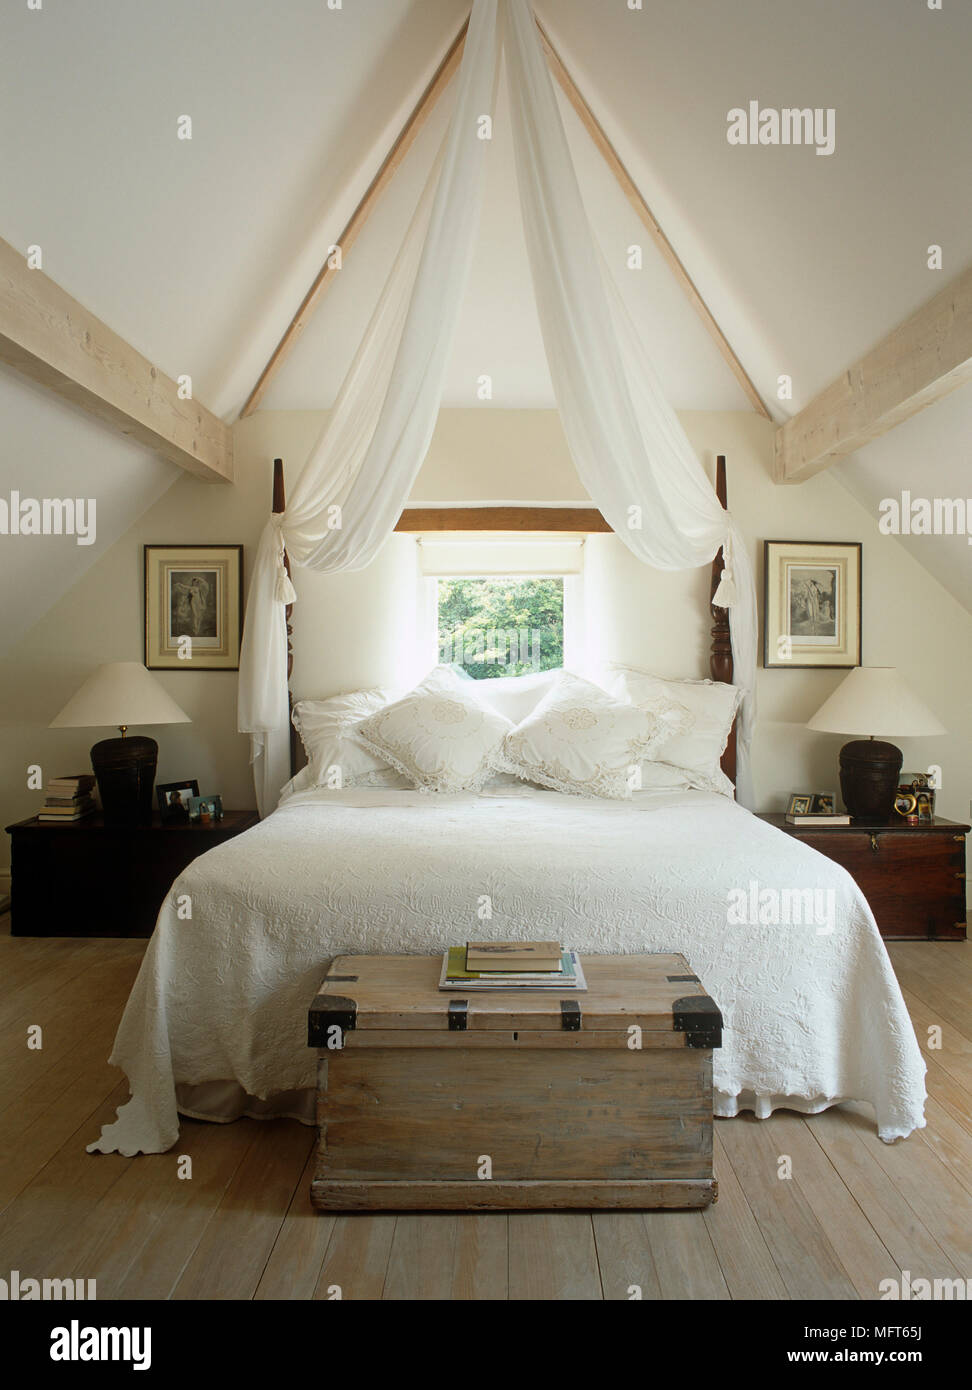 https www alamy com wooden chest at end of double bed in bedroom with vaulted ceiling image181855230 html